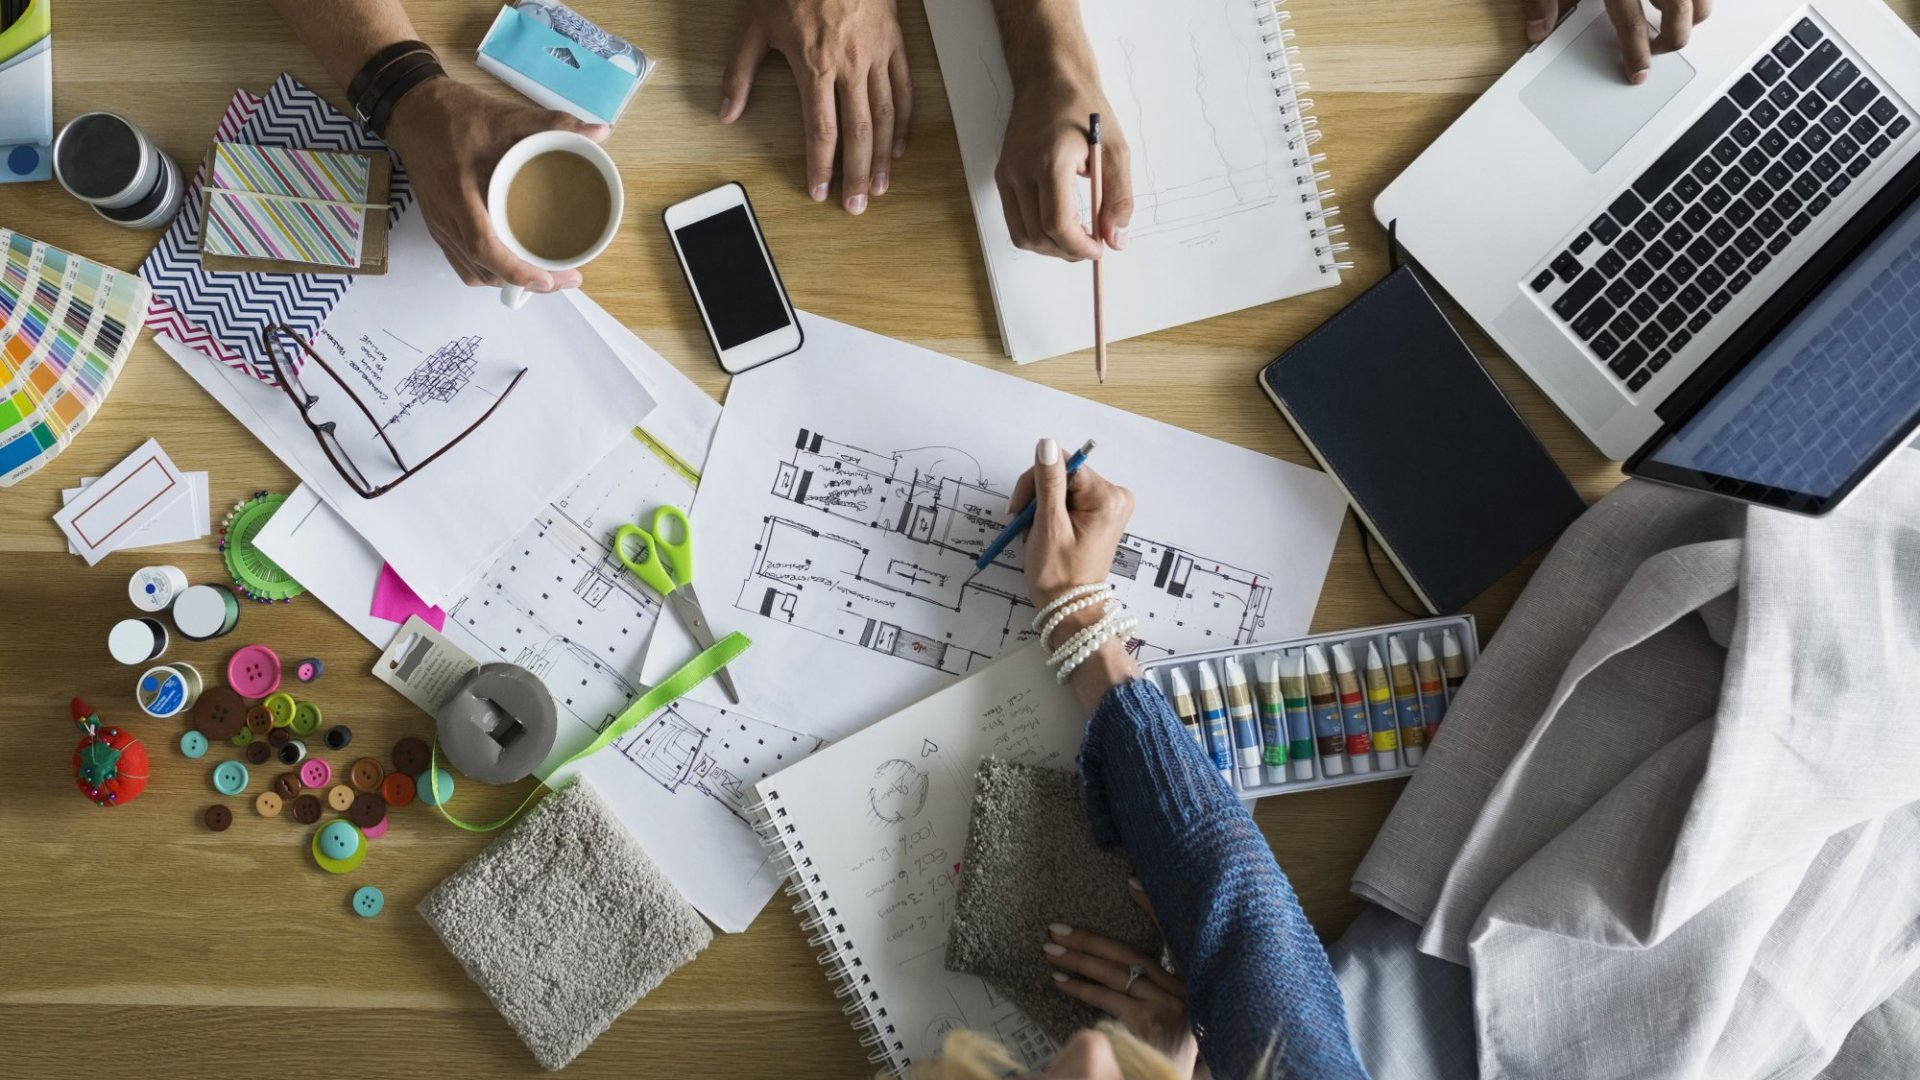 10 Ways to Go From Adequate to Exceptional in the Office